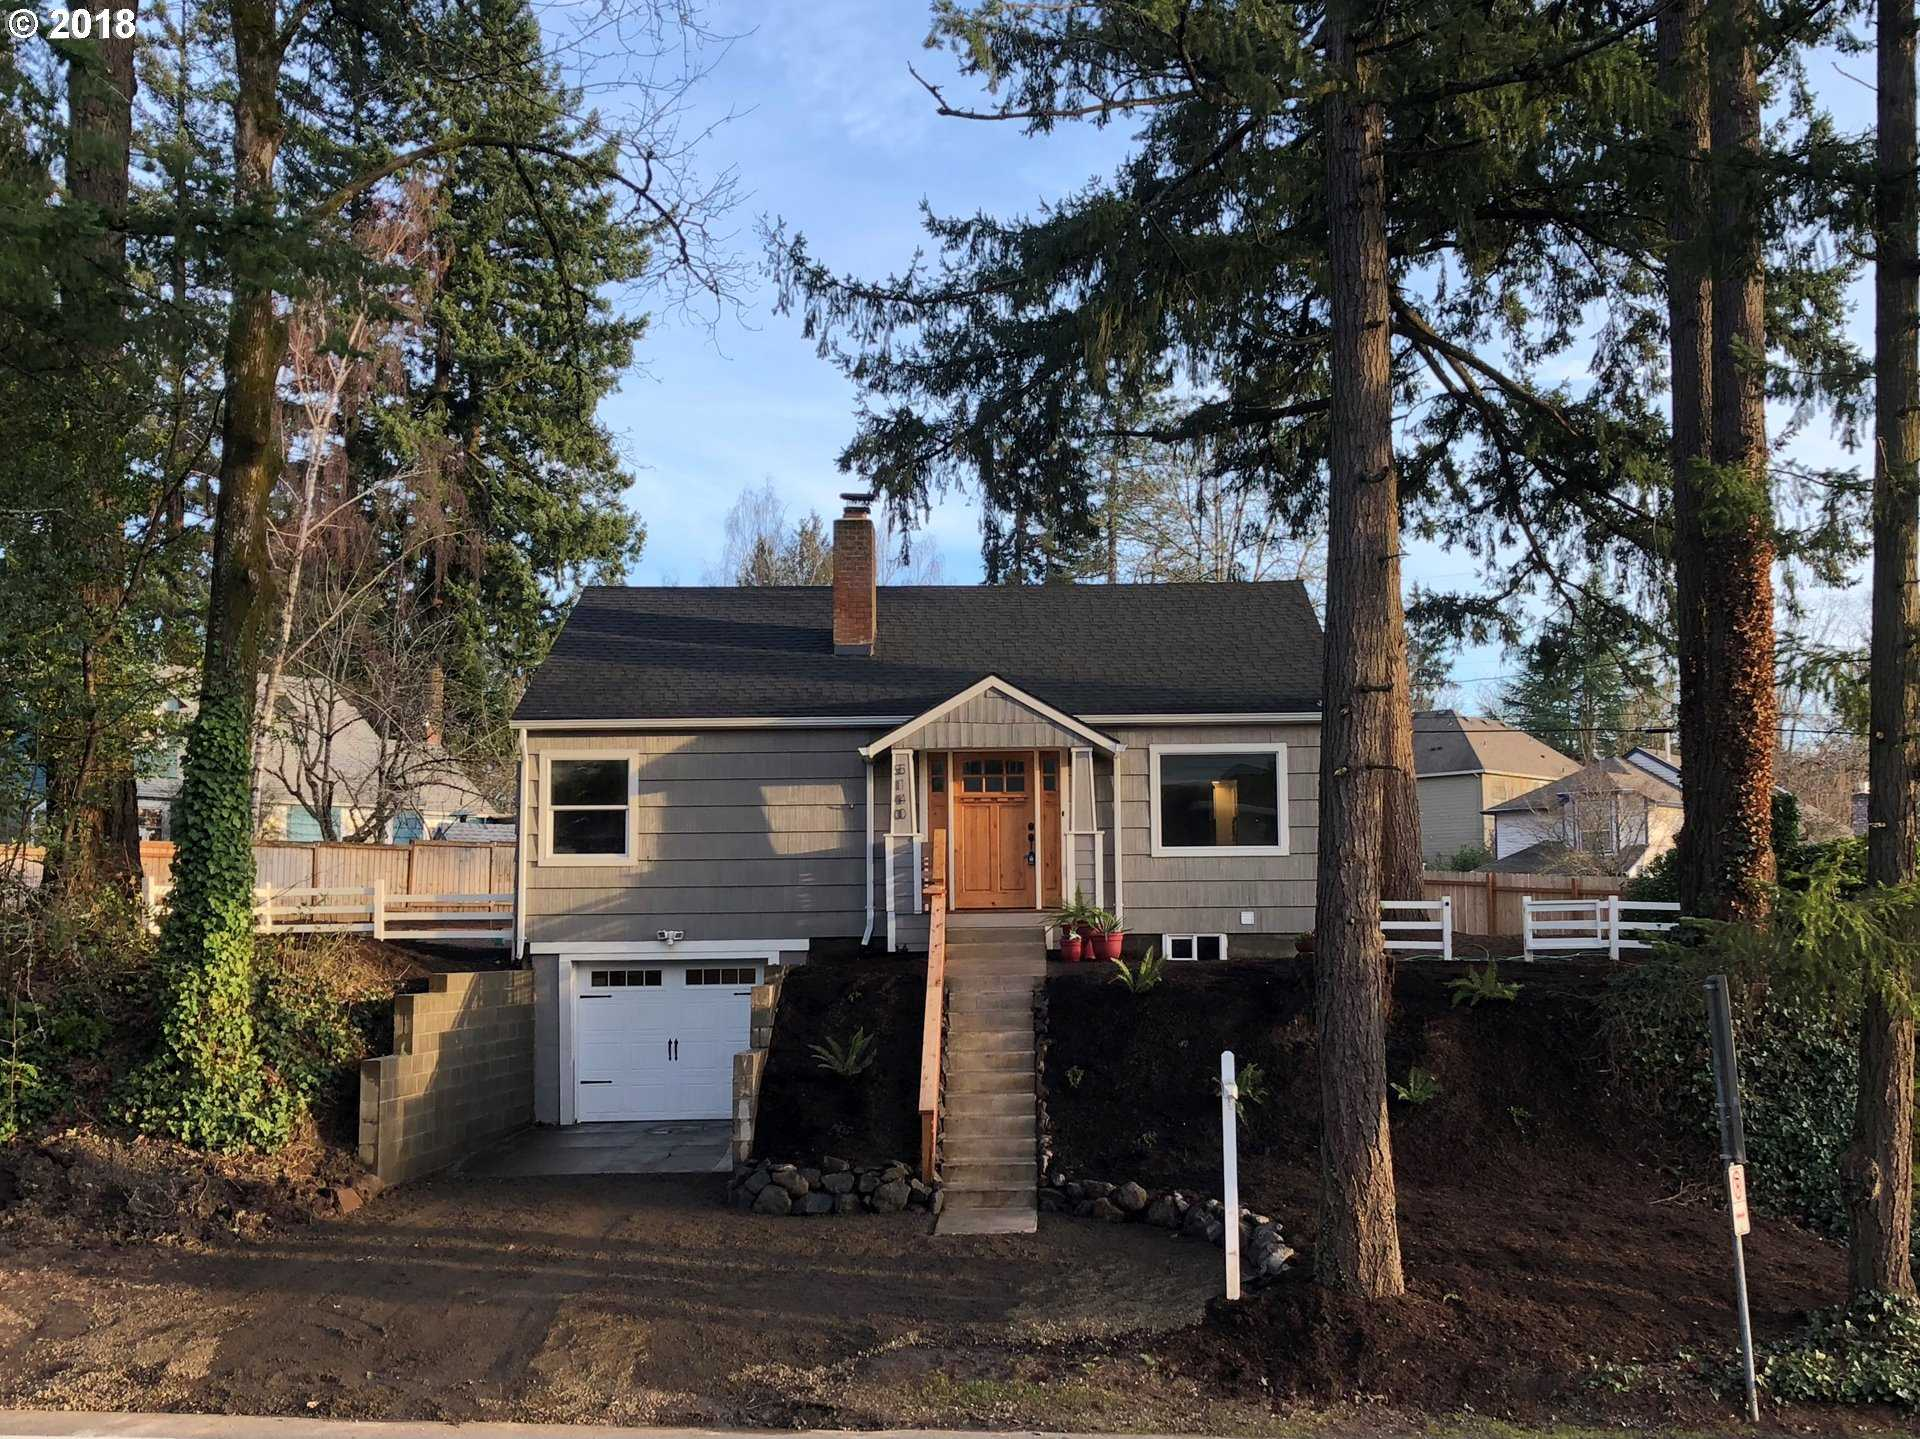 $550,000 - 3Br/2Ba -  for Sale in Maplewood, Portland